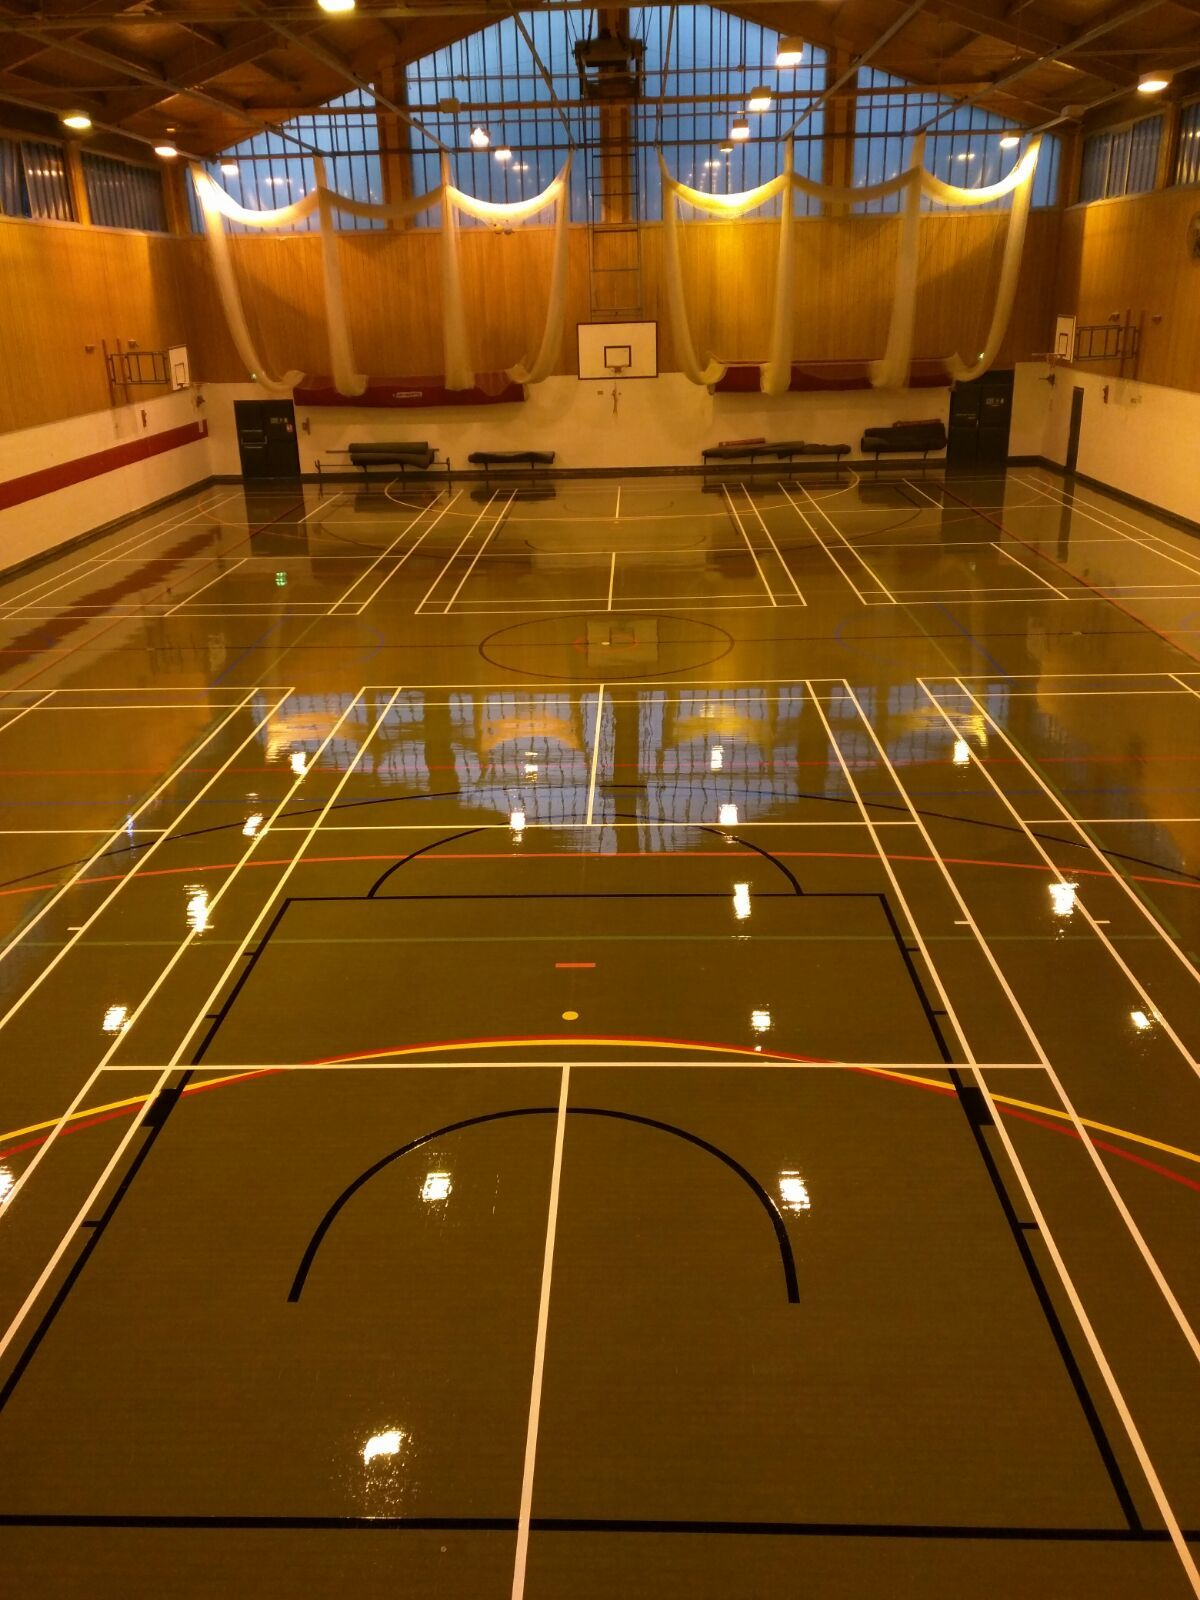 Sports Halls - Sport & Play service and maintain sports hall floors & equipment